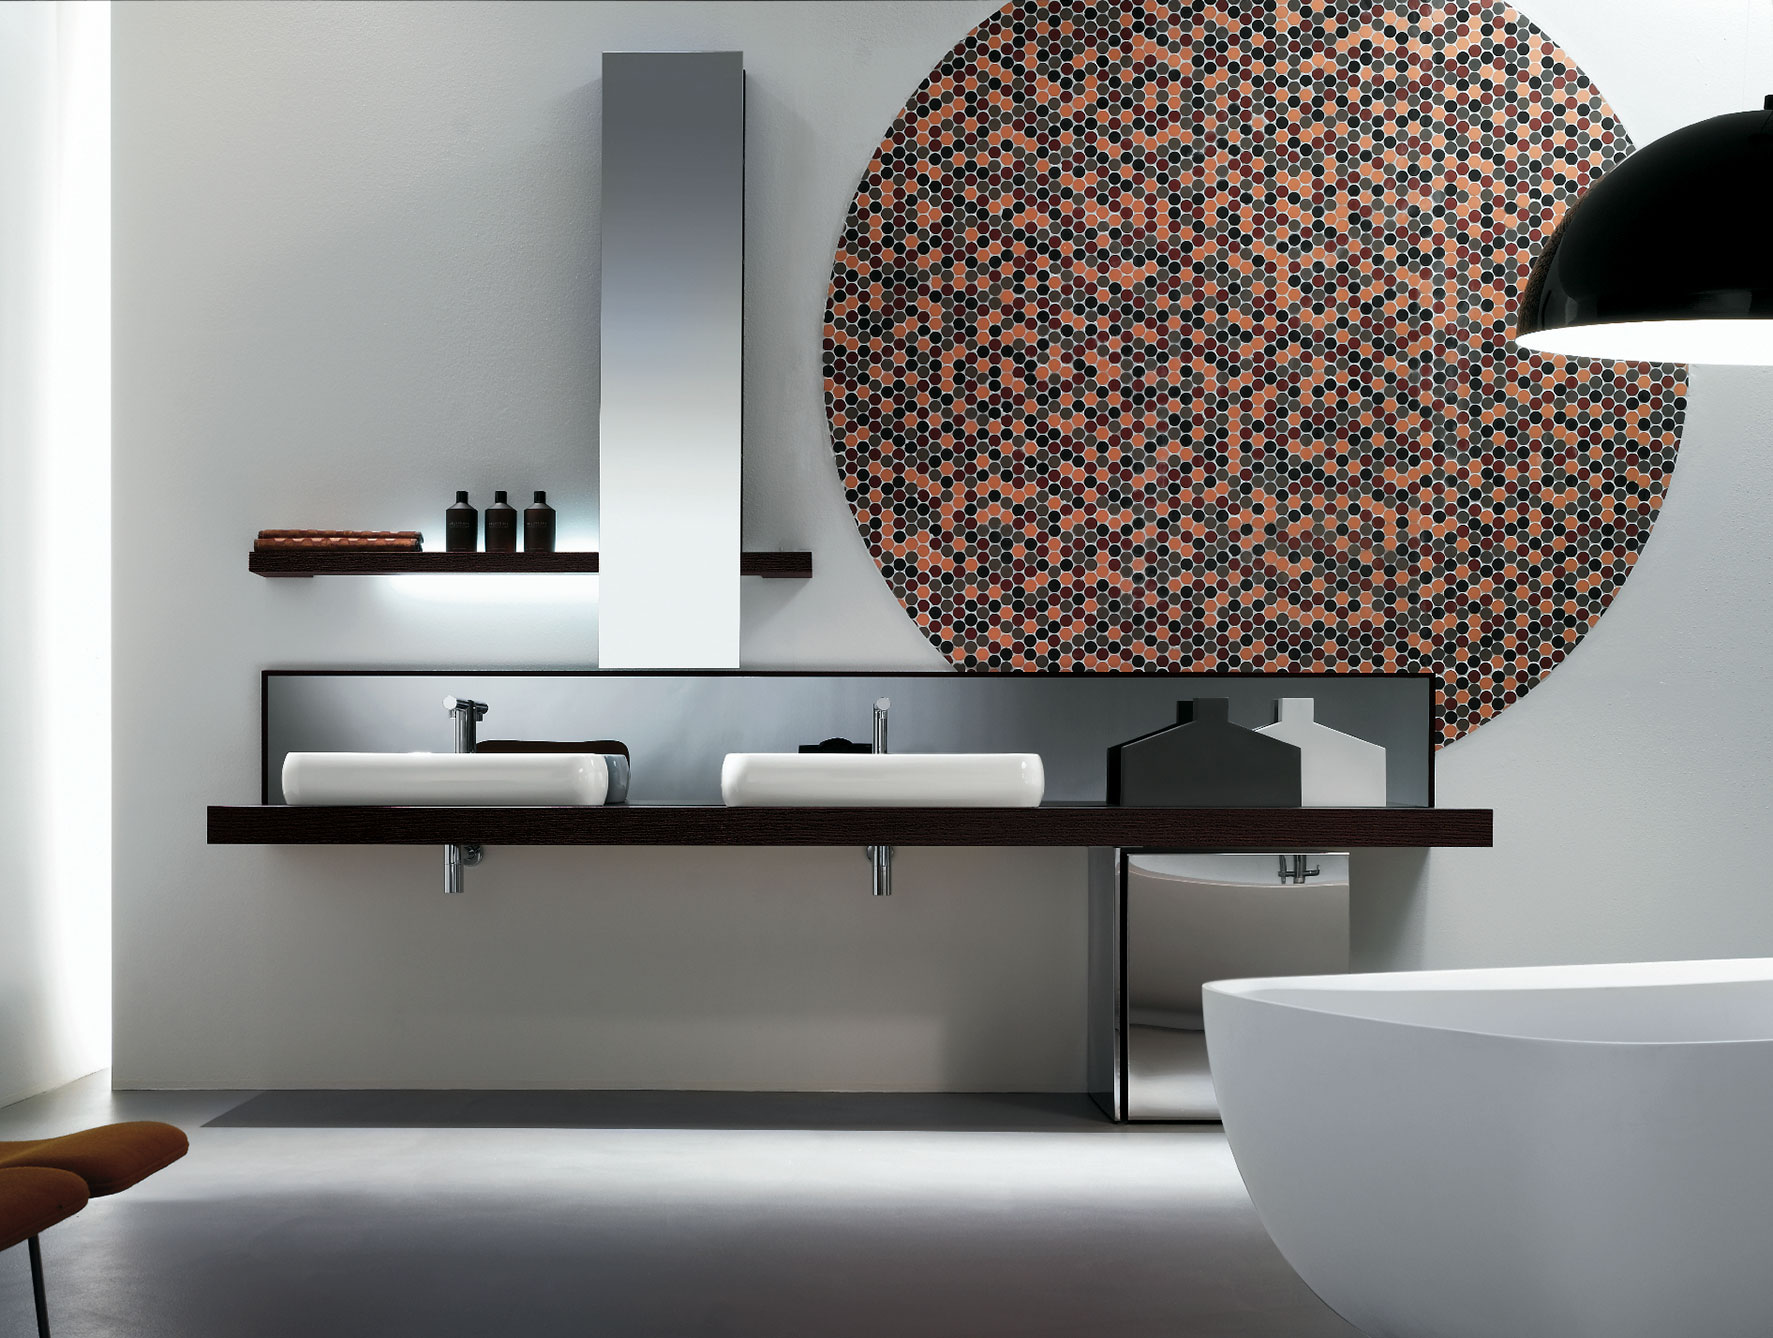 Bathroom Vanities Austin the luxury look of high-end bathroom vanities